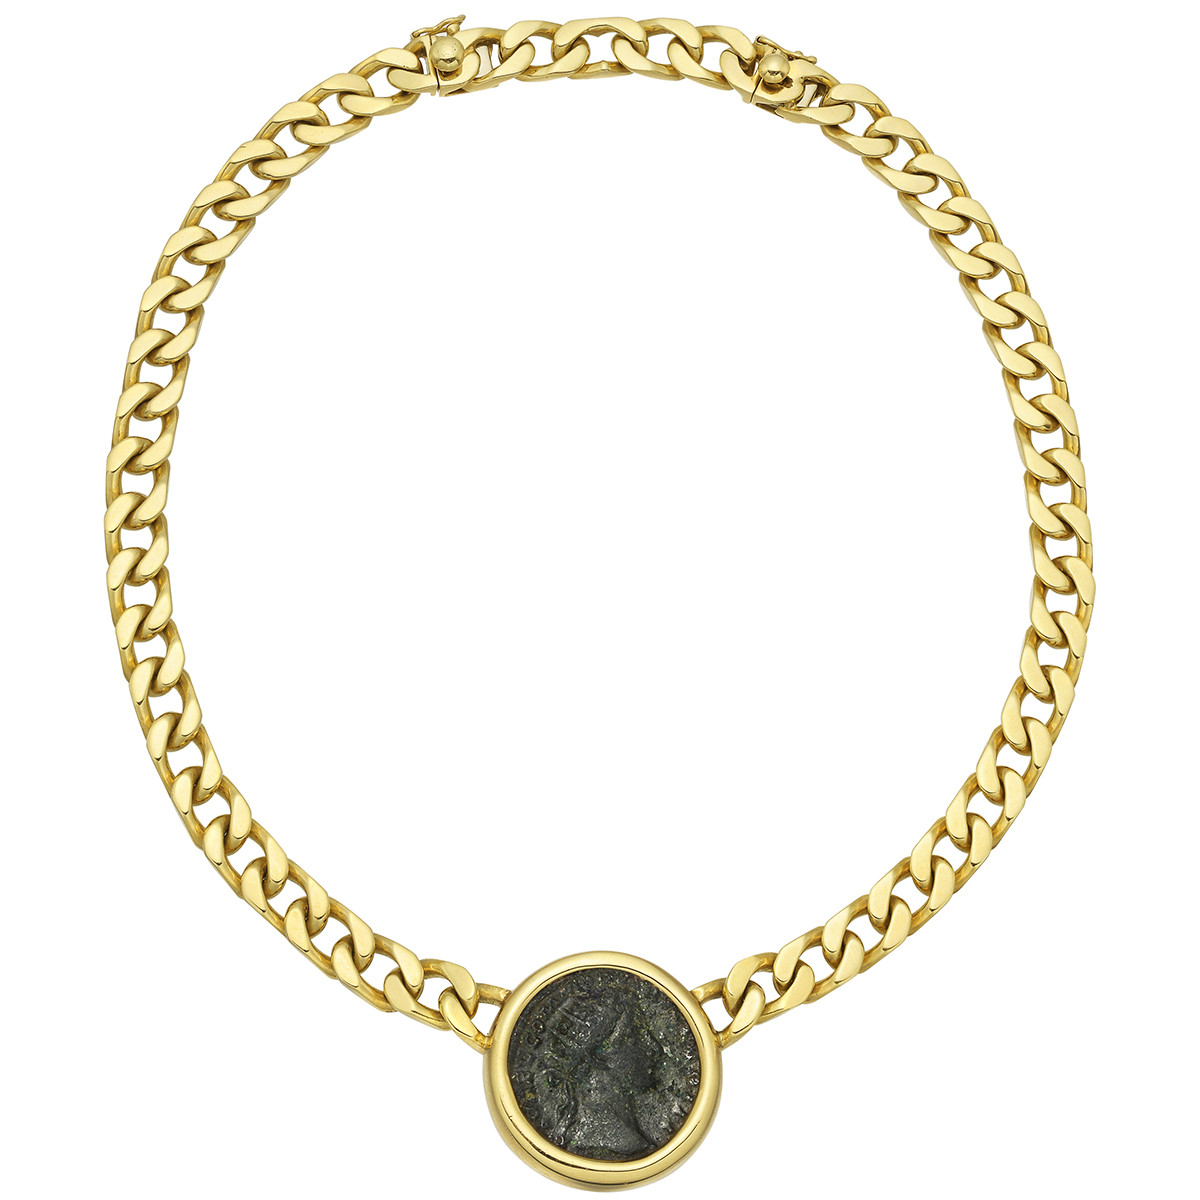 ltd necklace faceted gold dana glass bead coin charm and levy groupdiamanteancientromancoinballchainnecklacedanalevy antique products bracelet silver ancient chain ball diamante roman